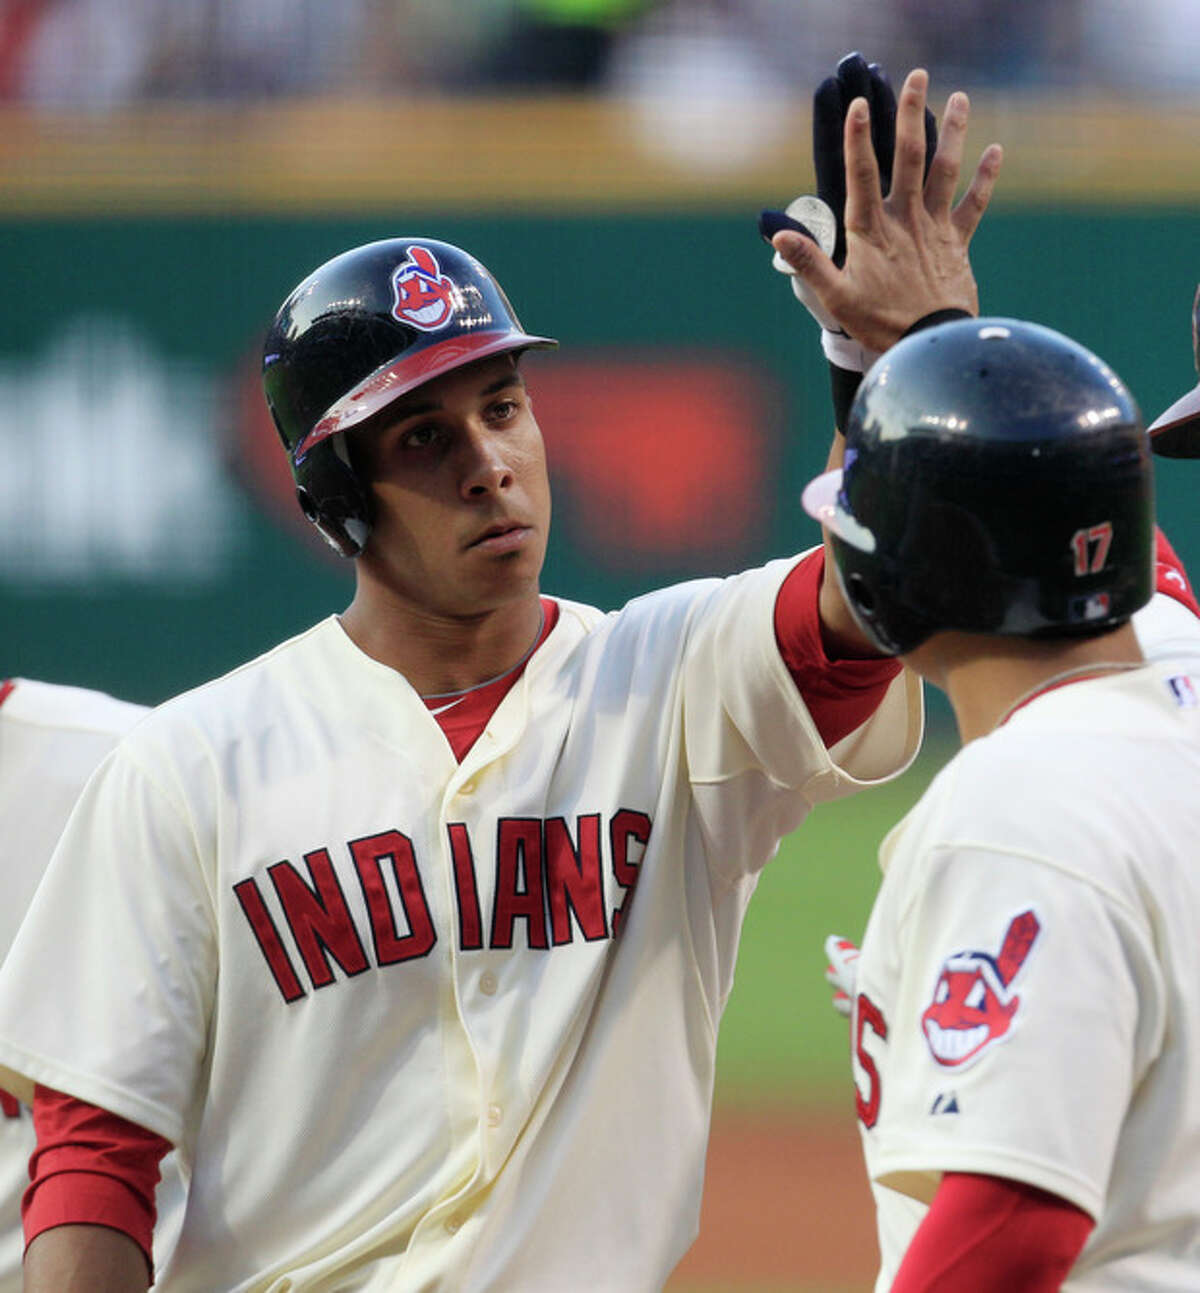 Cleveland Indians' Michael Brantley, left, is congratulated by Shin-Soo Choo after Brantley hit a three-run home run off New York Yankees starting pitcher Hiroki Kuroda in the first inning of a baseball game, Saturday, Aug. 25, 2012, in Cleveland. (AP Photo/Tony Dejak)